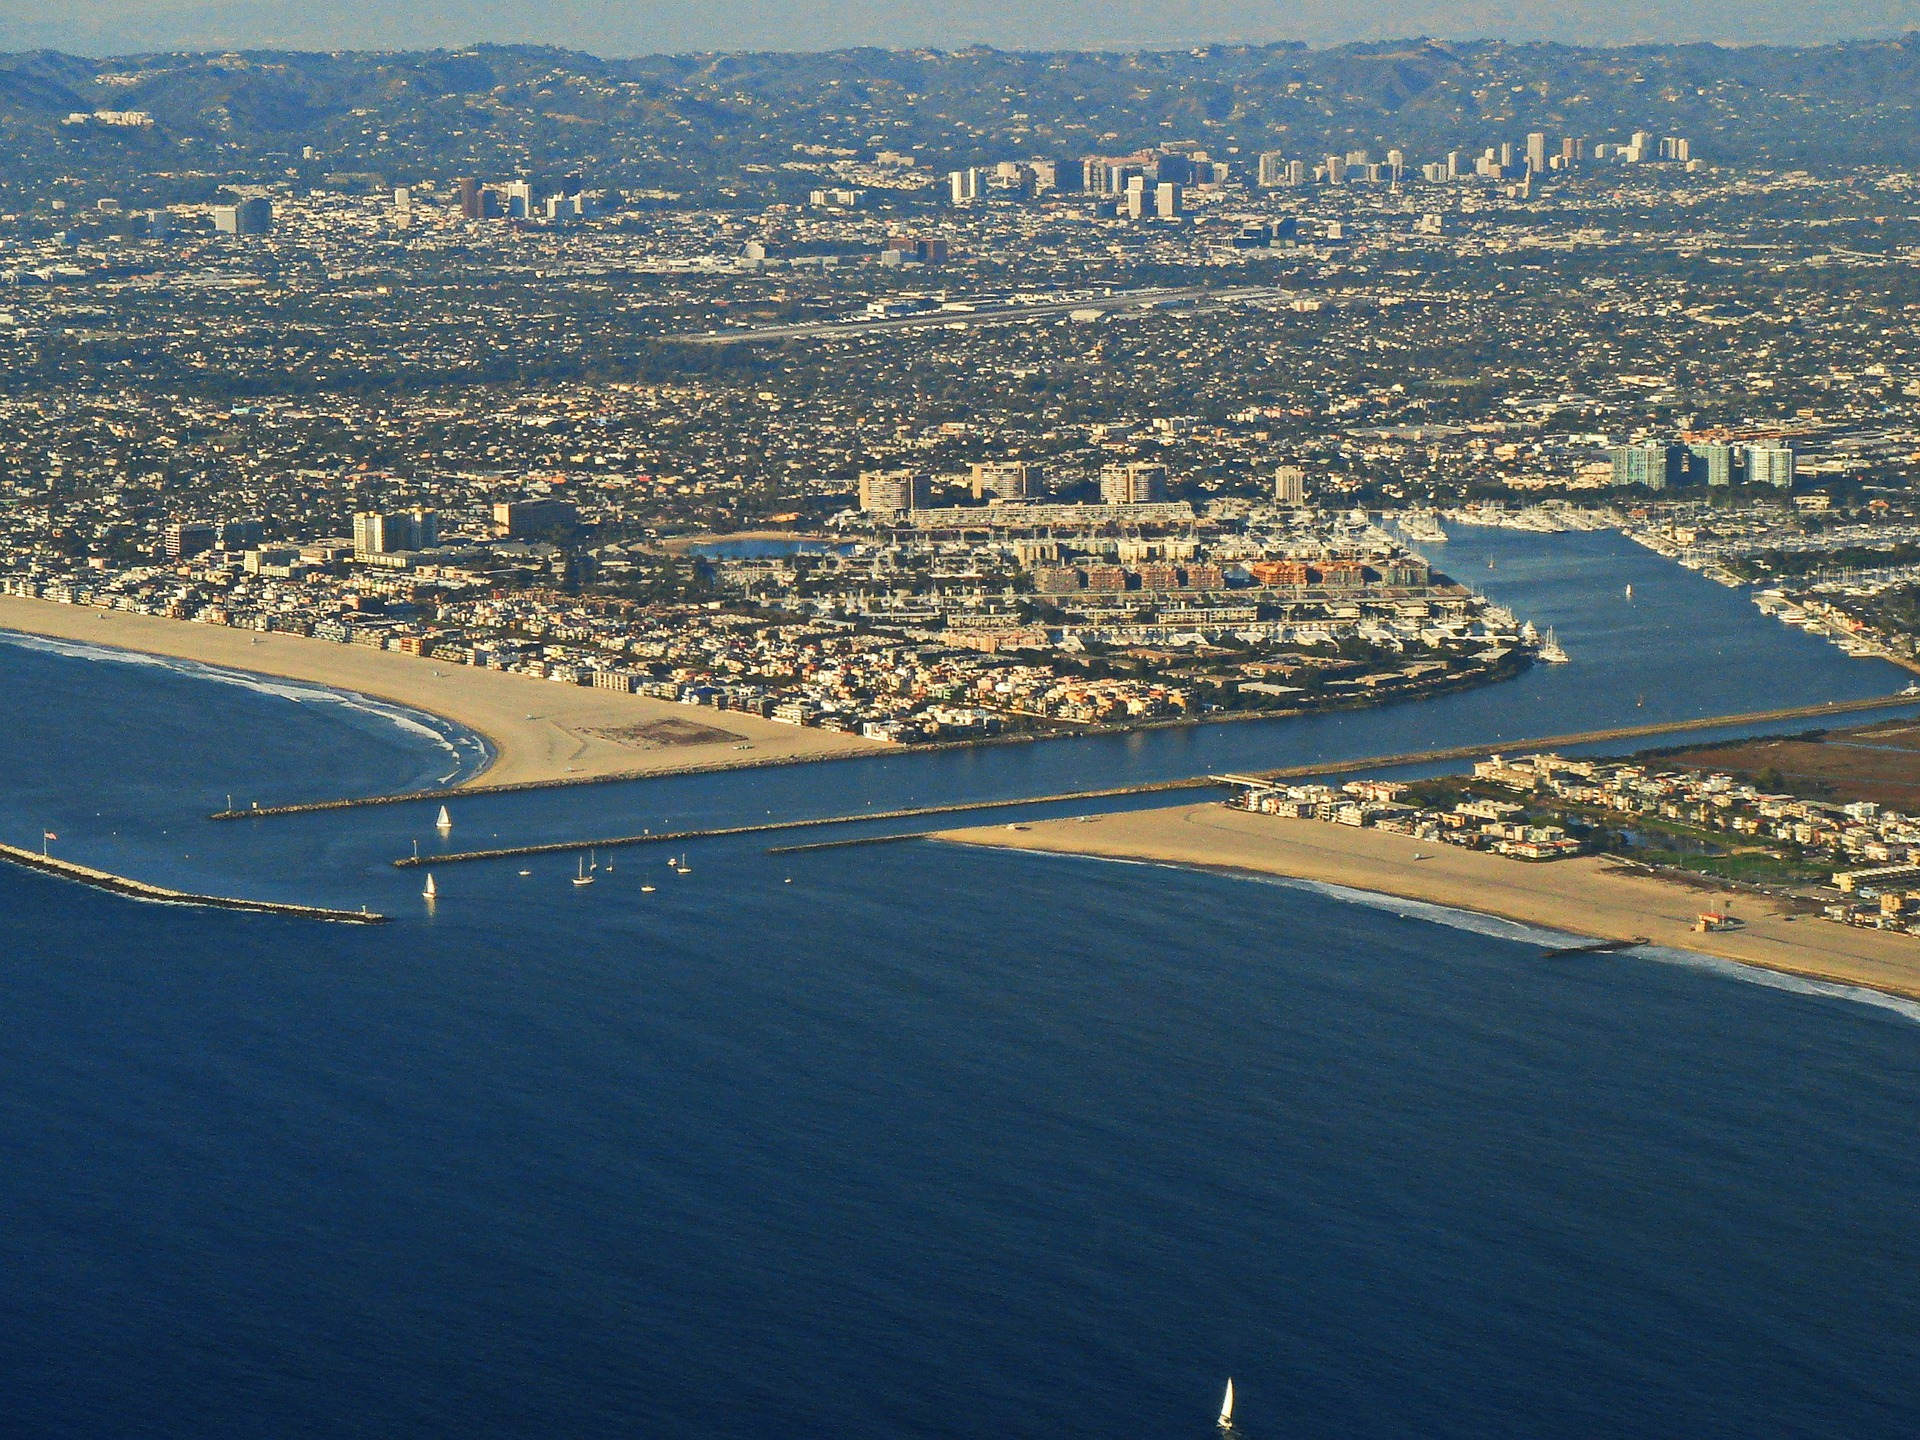 Marina del Rey, Los Angeles